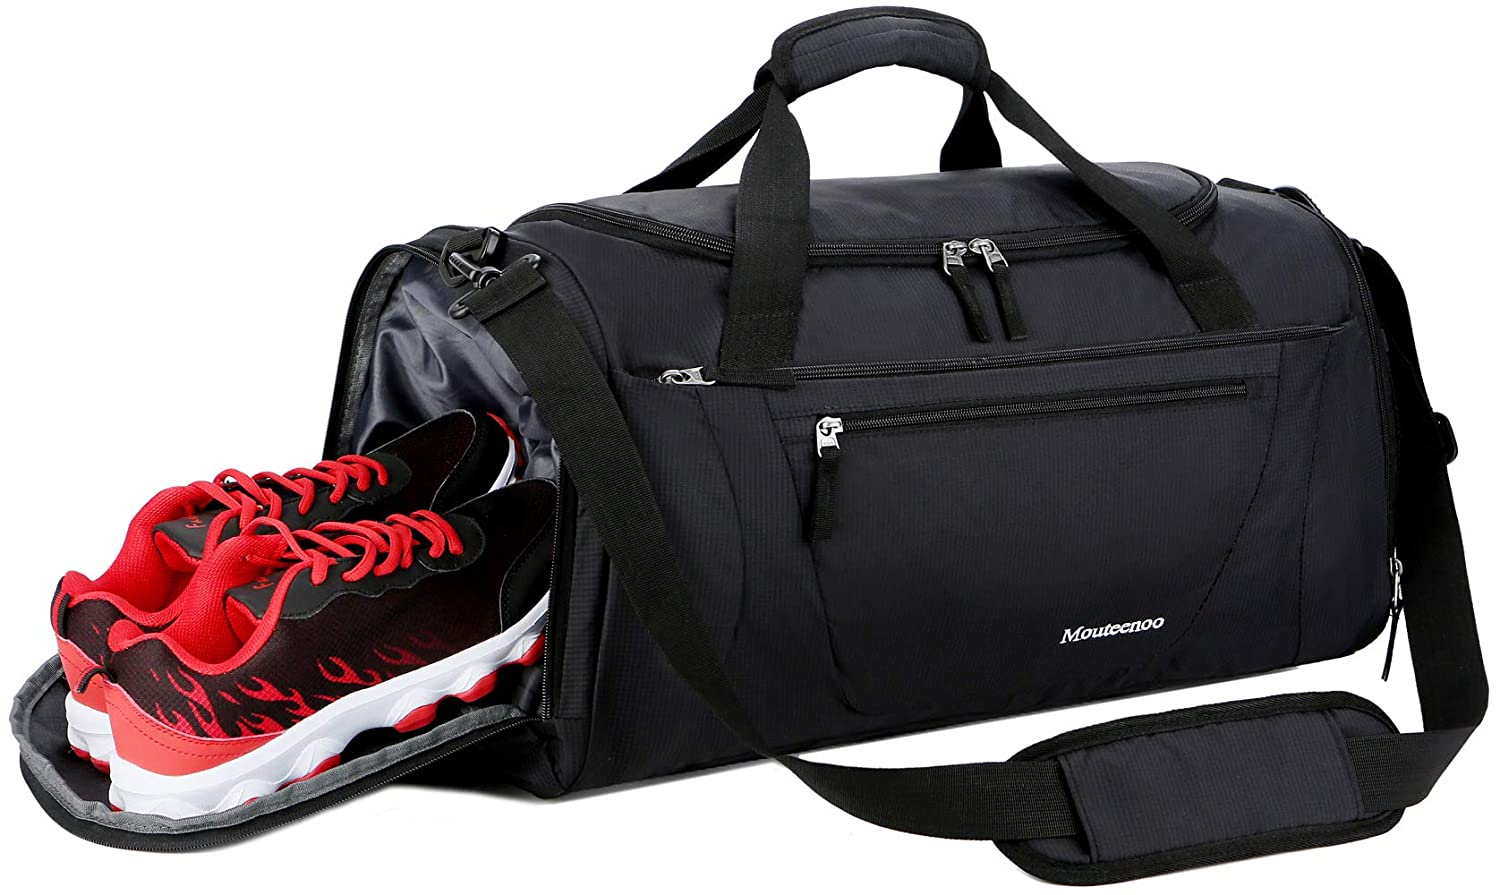 111713e114 Amazon.com | Mouteenoo Gym Bag 40L Sports Travel Duffel Bag for Men and  Women with Shoes Compartment (One_Size, Black) | Sports Duffels